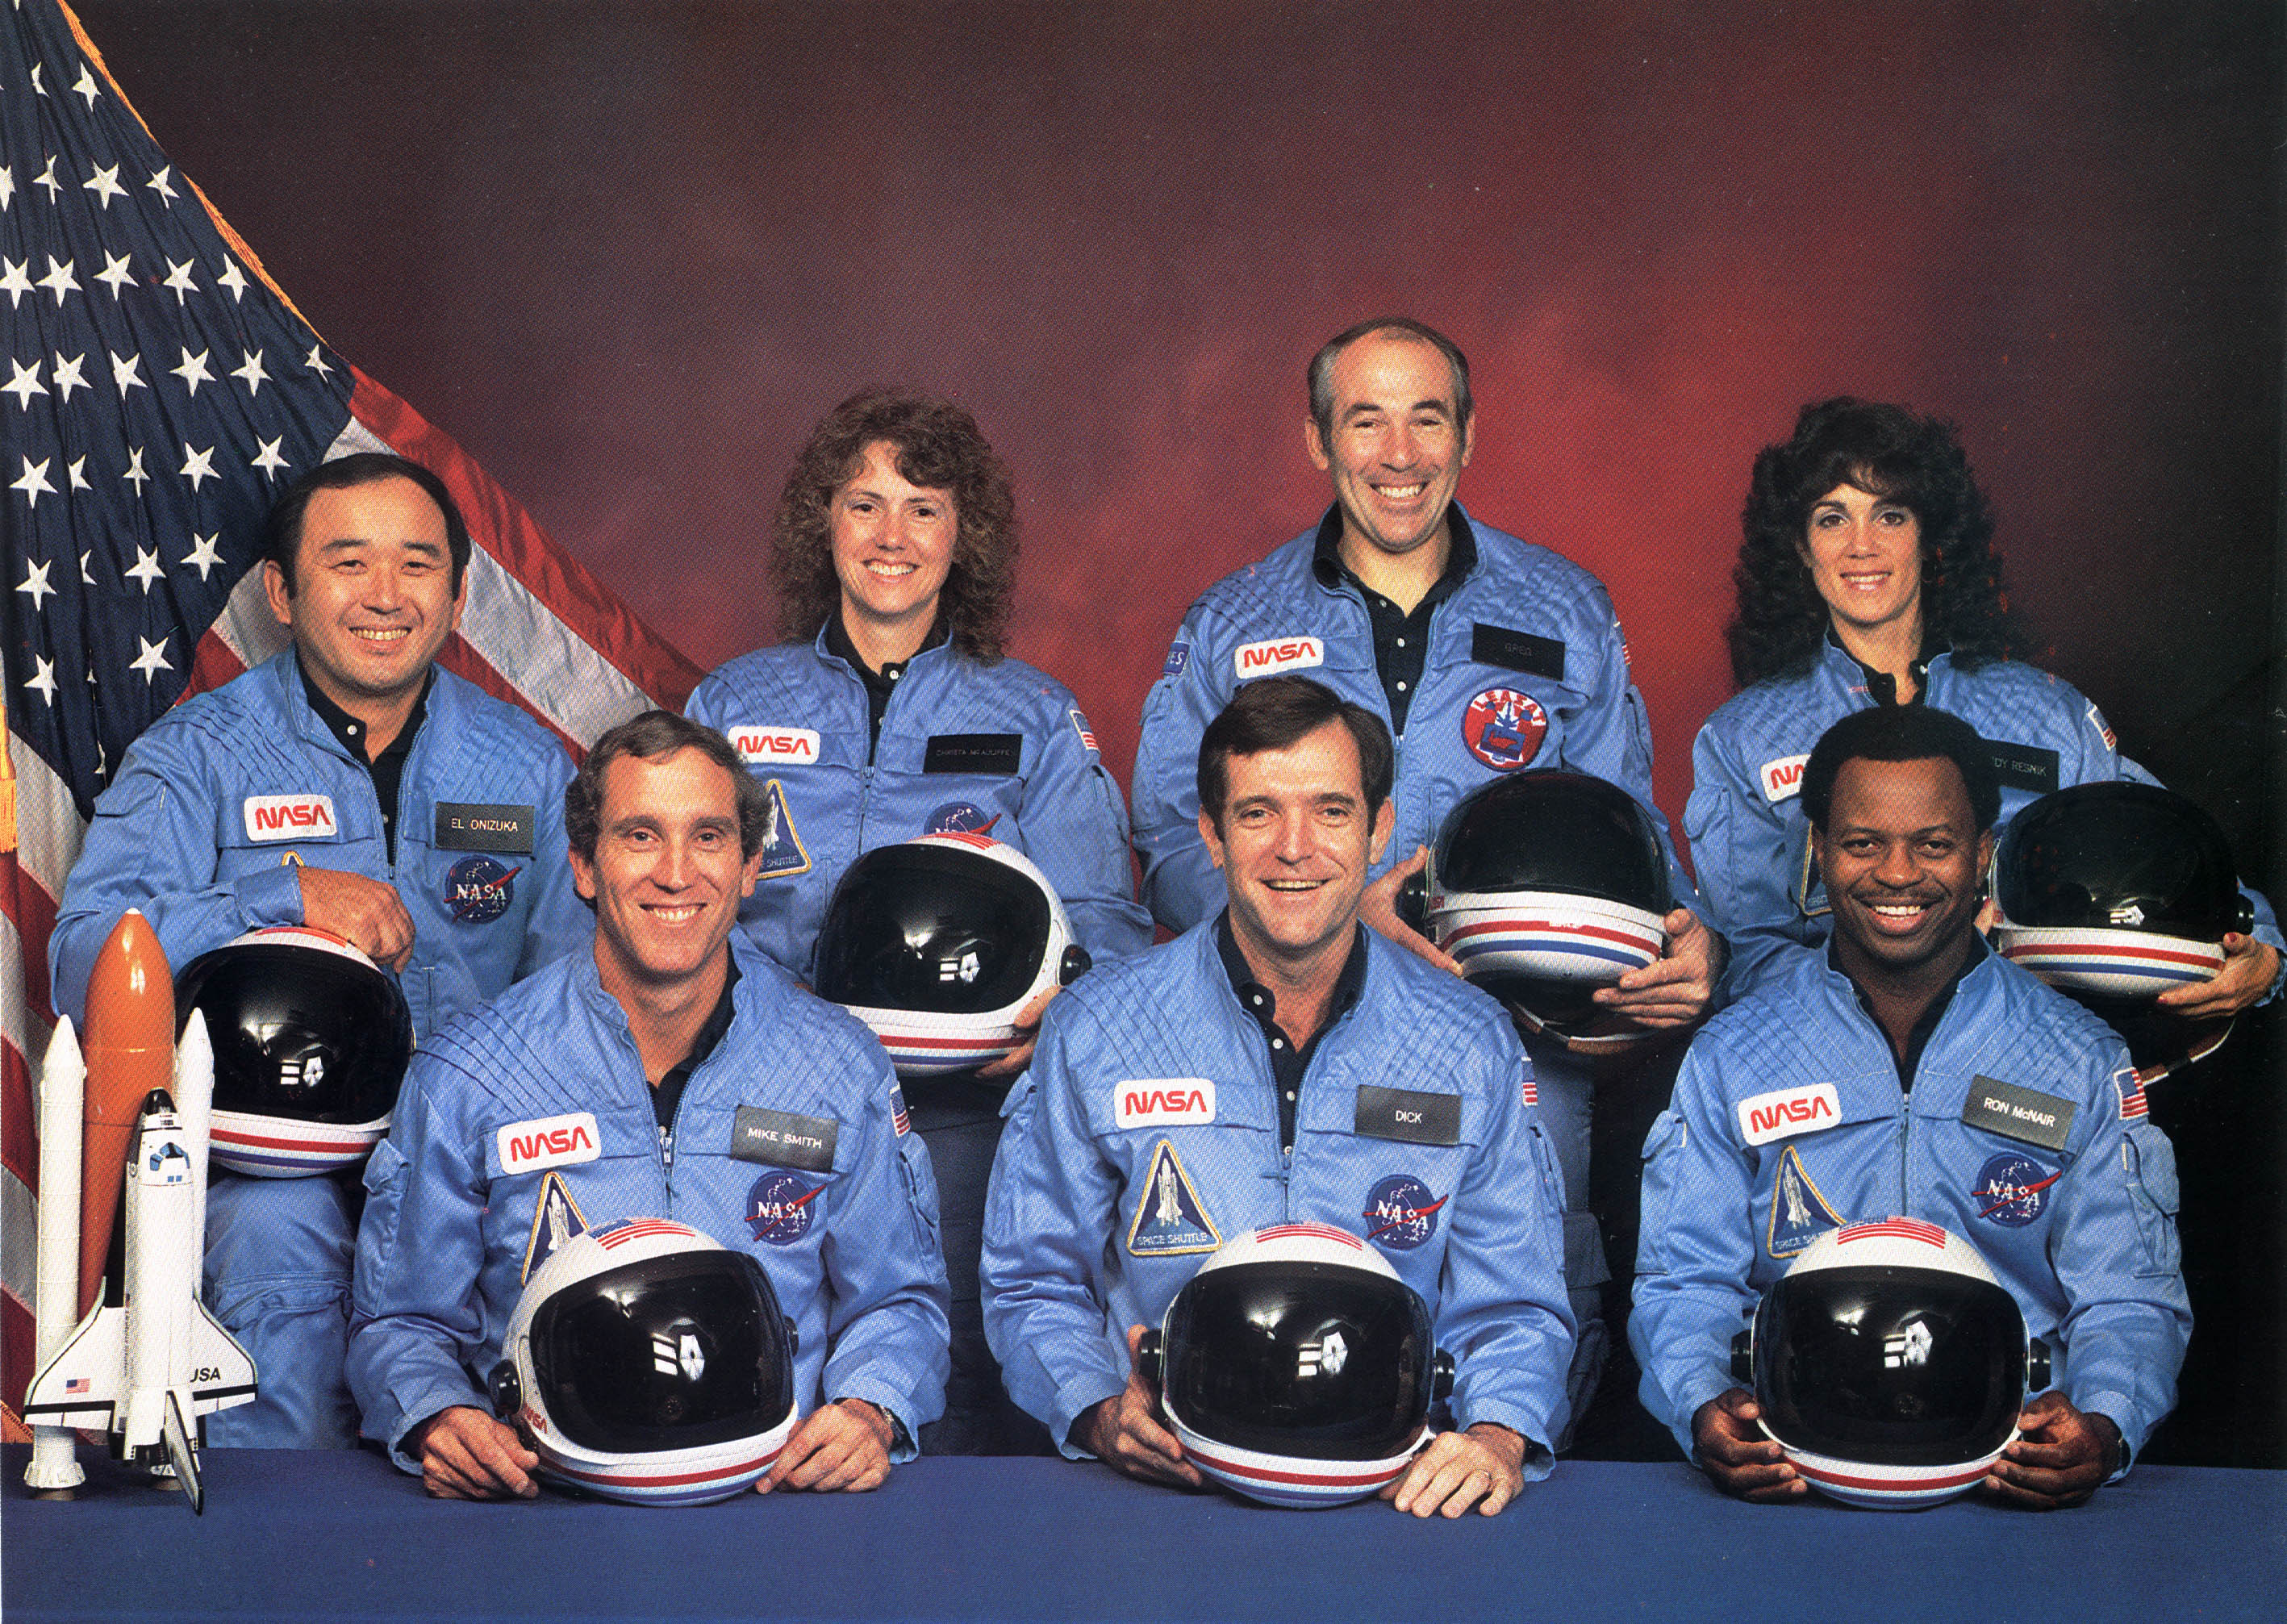 The Challenger Astronauts:  back row left to right El Onizuka, Christa McAuliffe, Greg Jarvis, Judy Resnik; front row left to right Mike Smith, Dick Scobee, and Ron McNair.